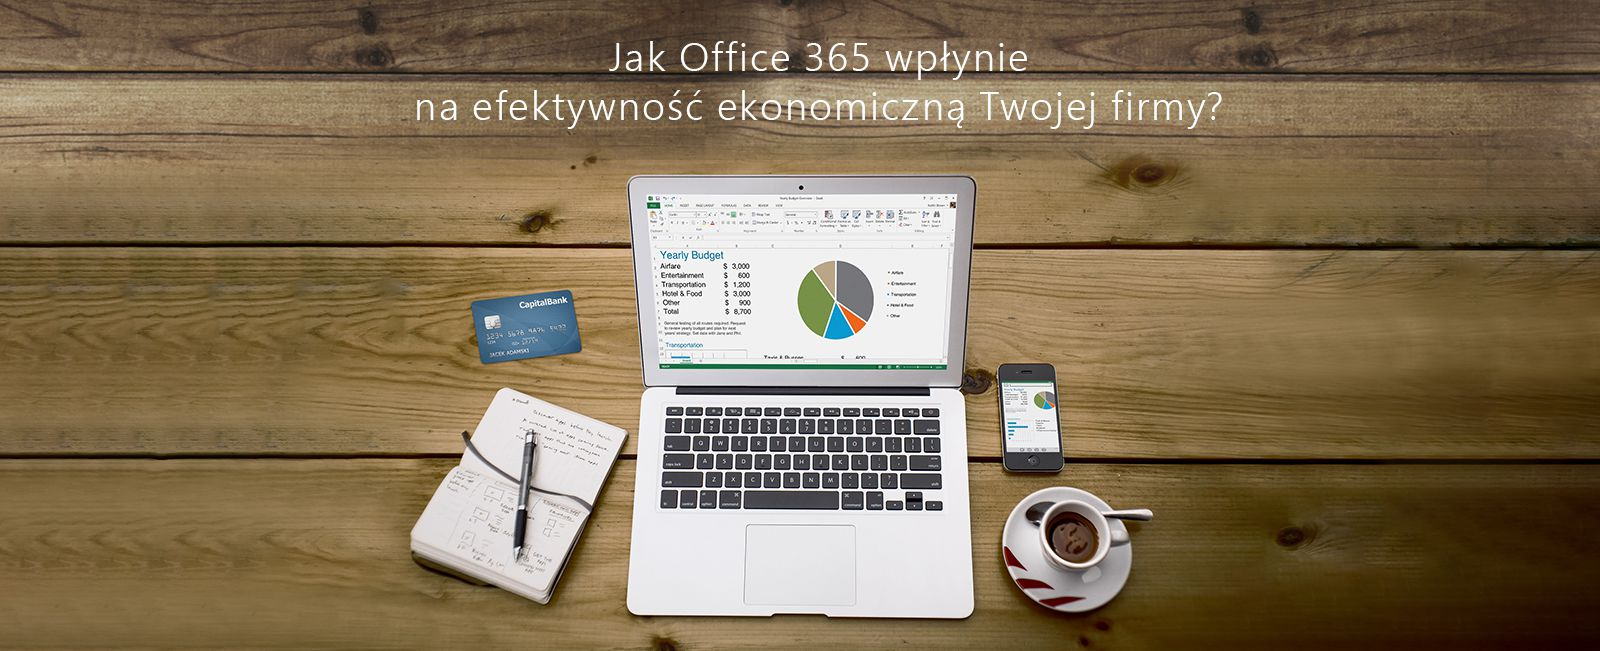 office 365 dla firm